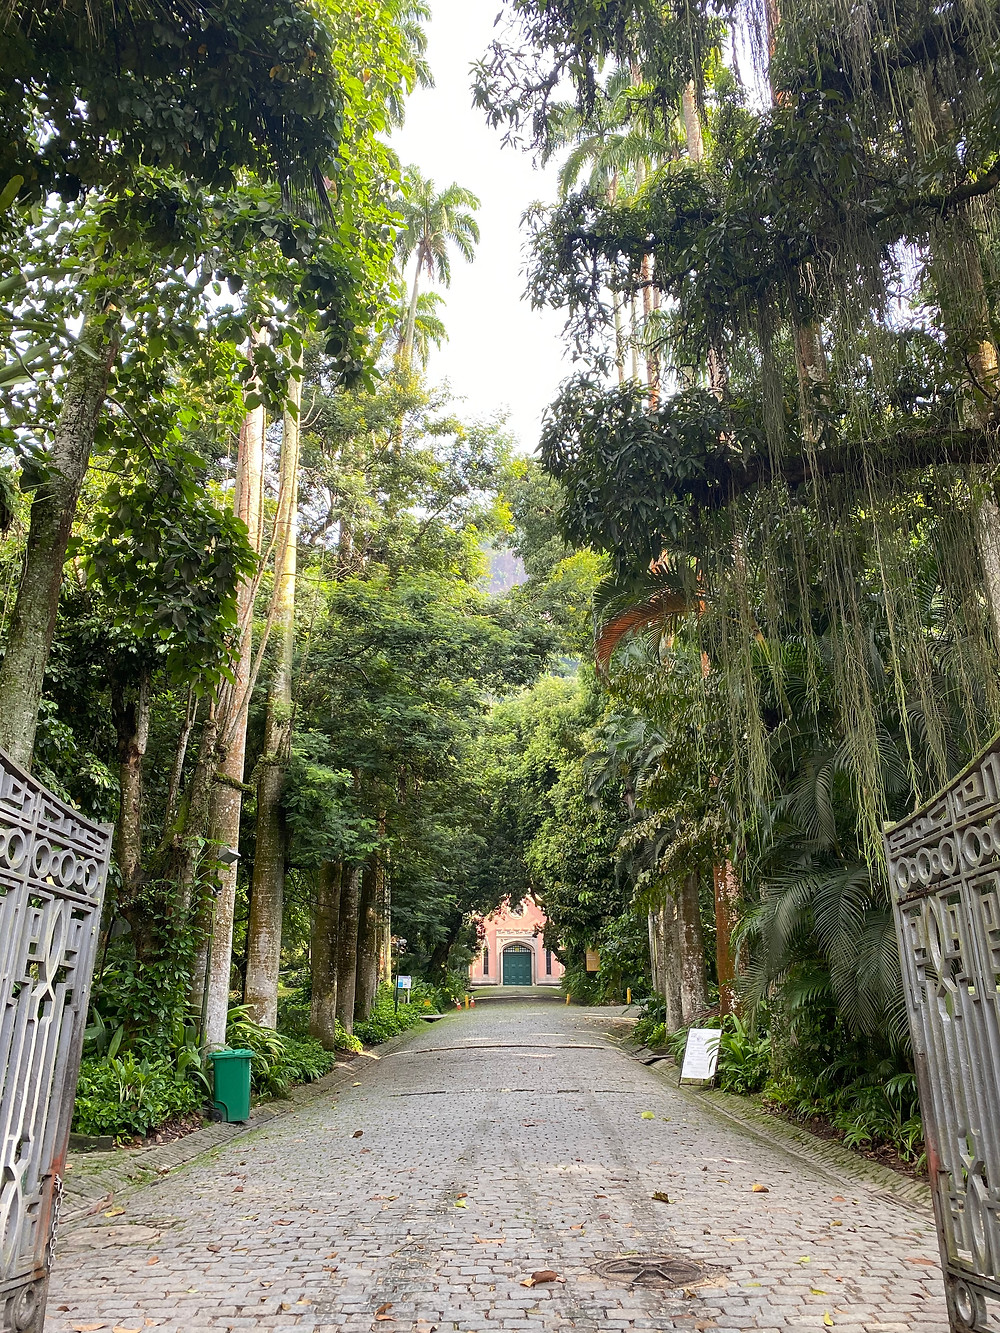 Parque Lage is a large park at the foot of Corcovado and offers astonishing viewpoints for great pictures.